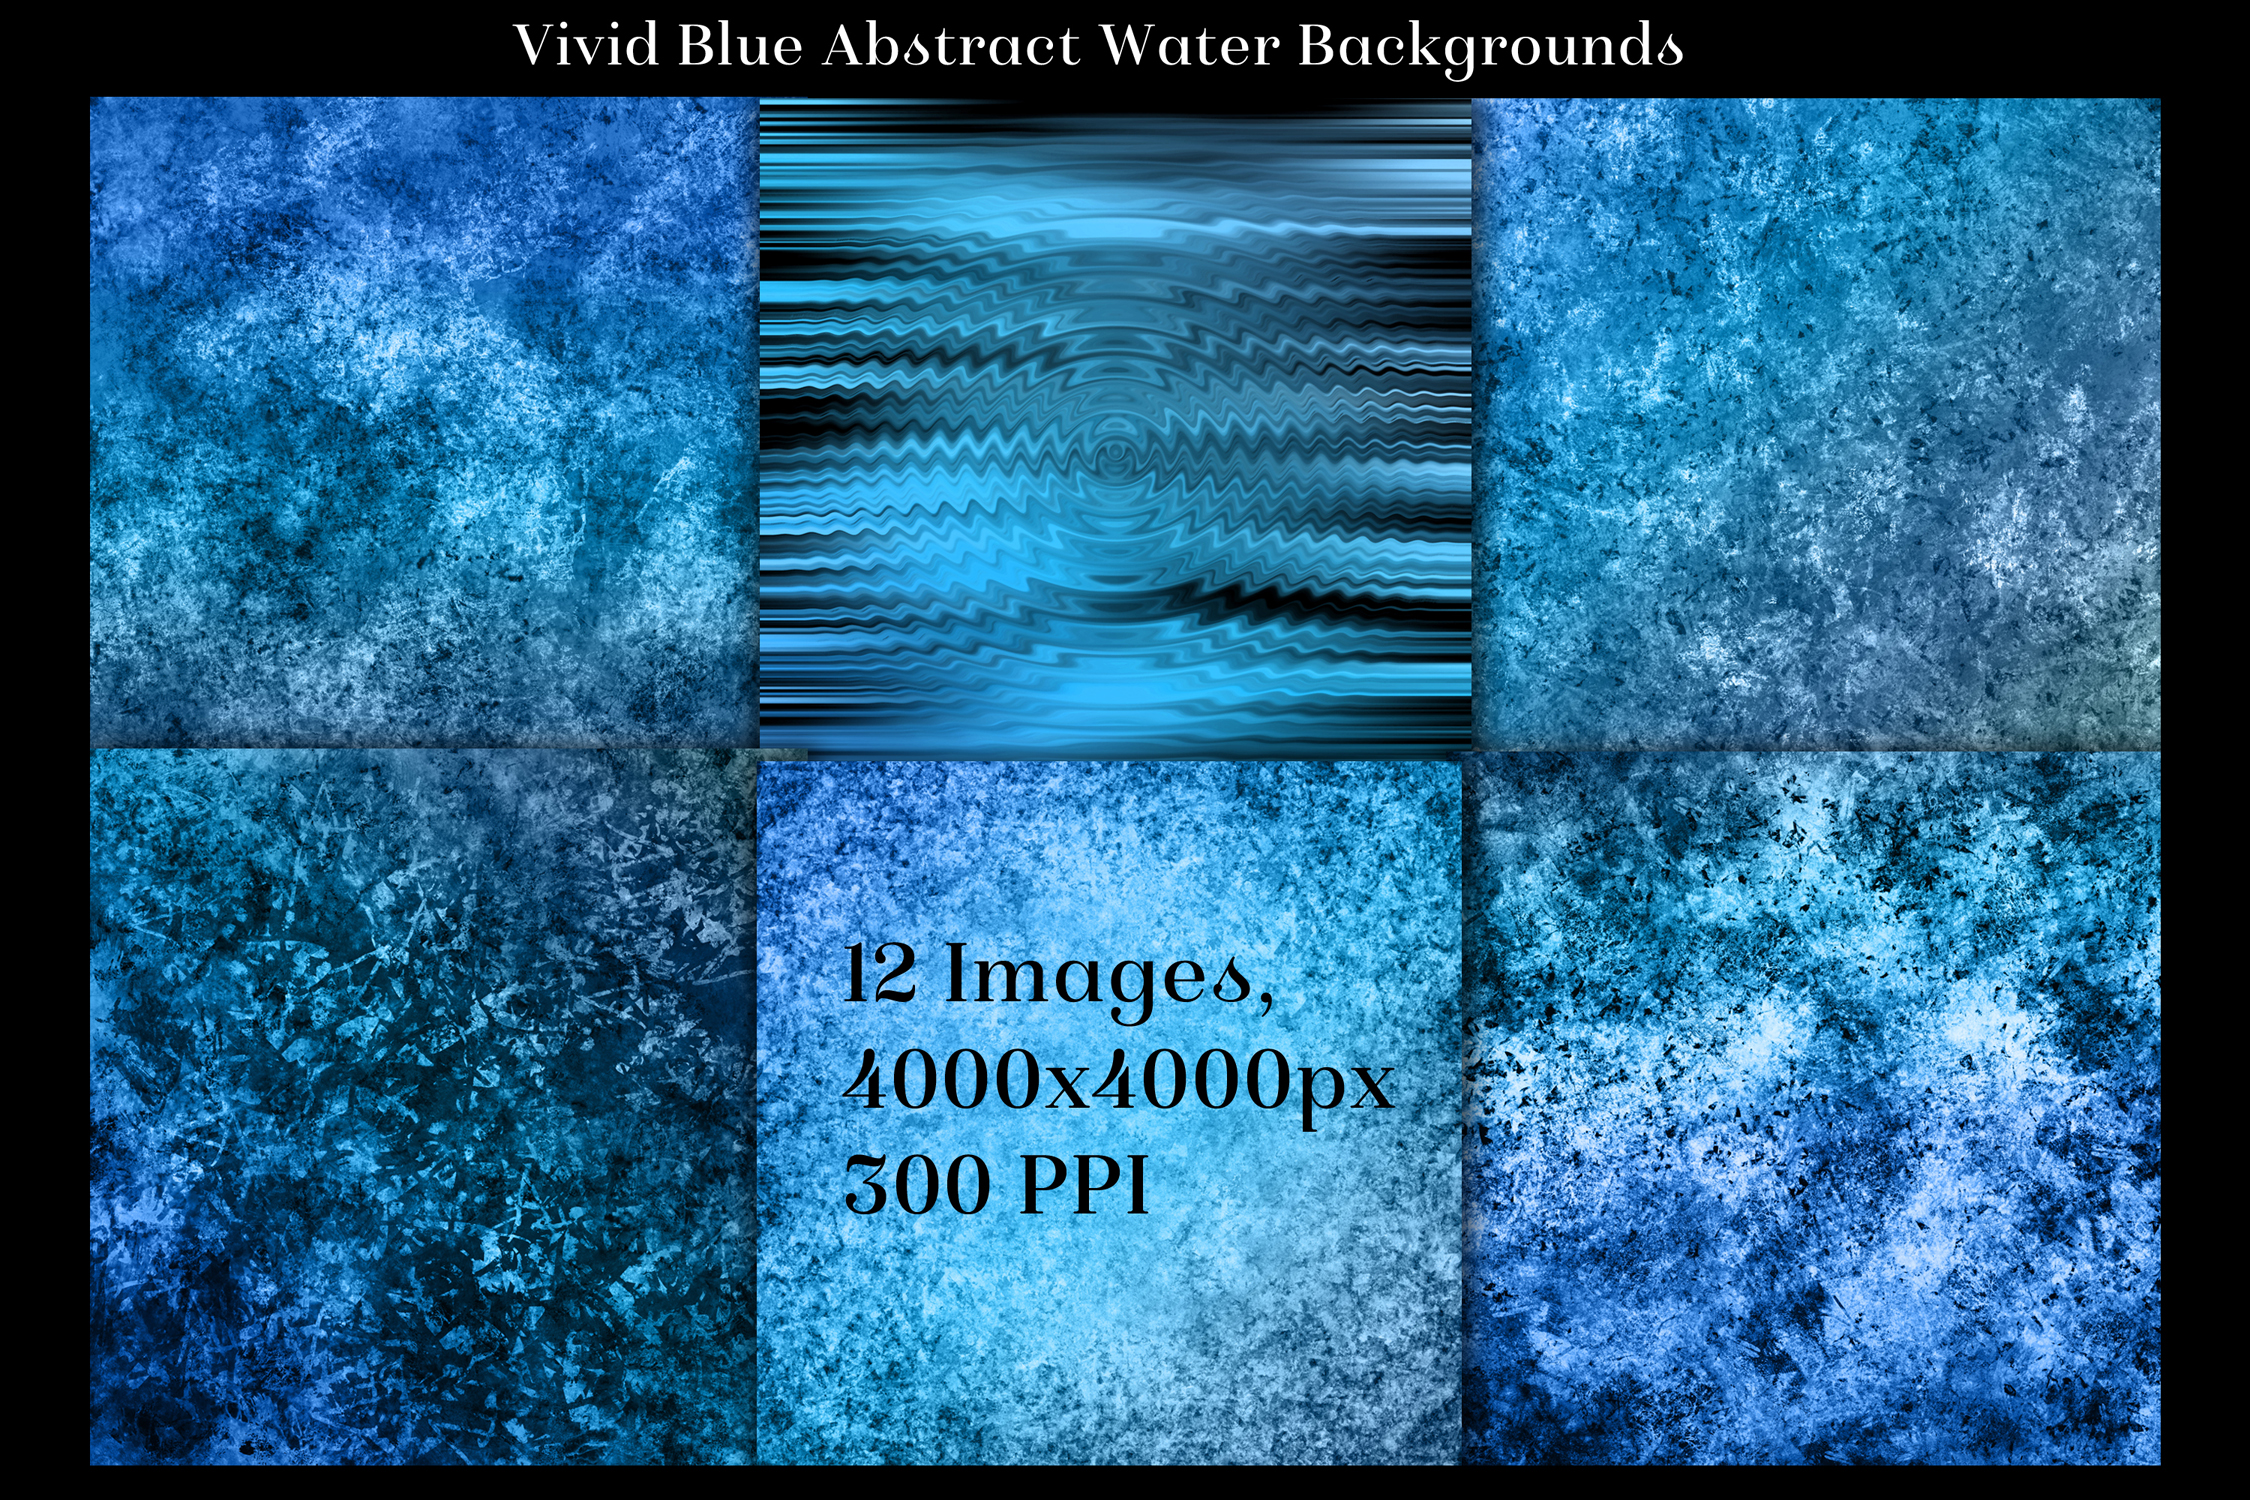 Vivid Blue Abstract Water Backgrounds - 12 Image Textures example image 2